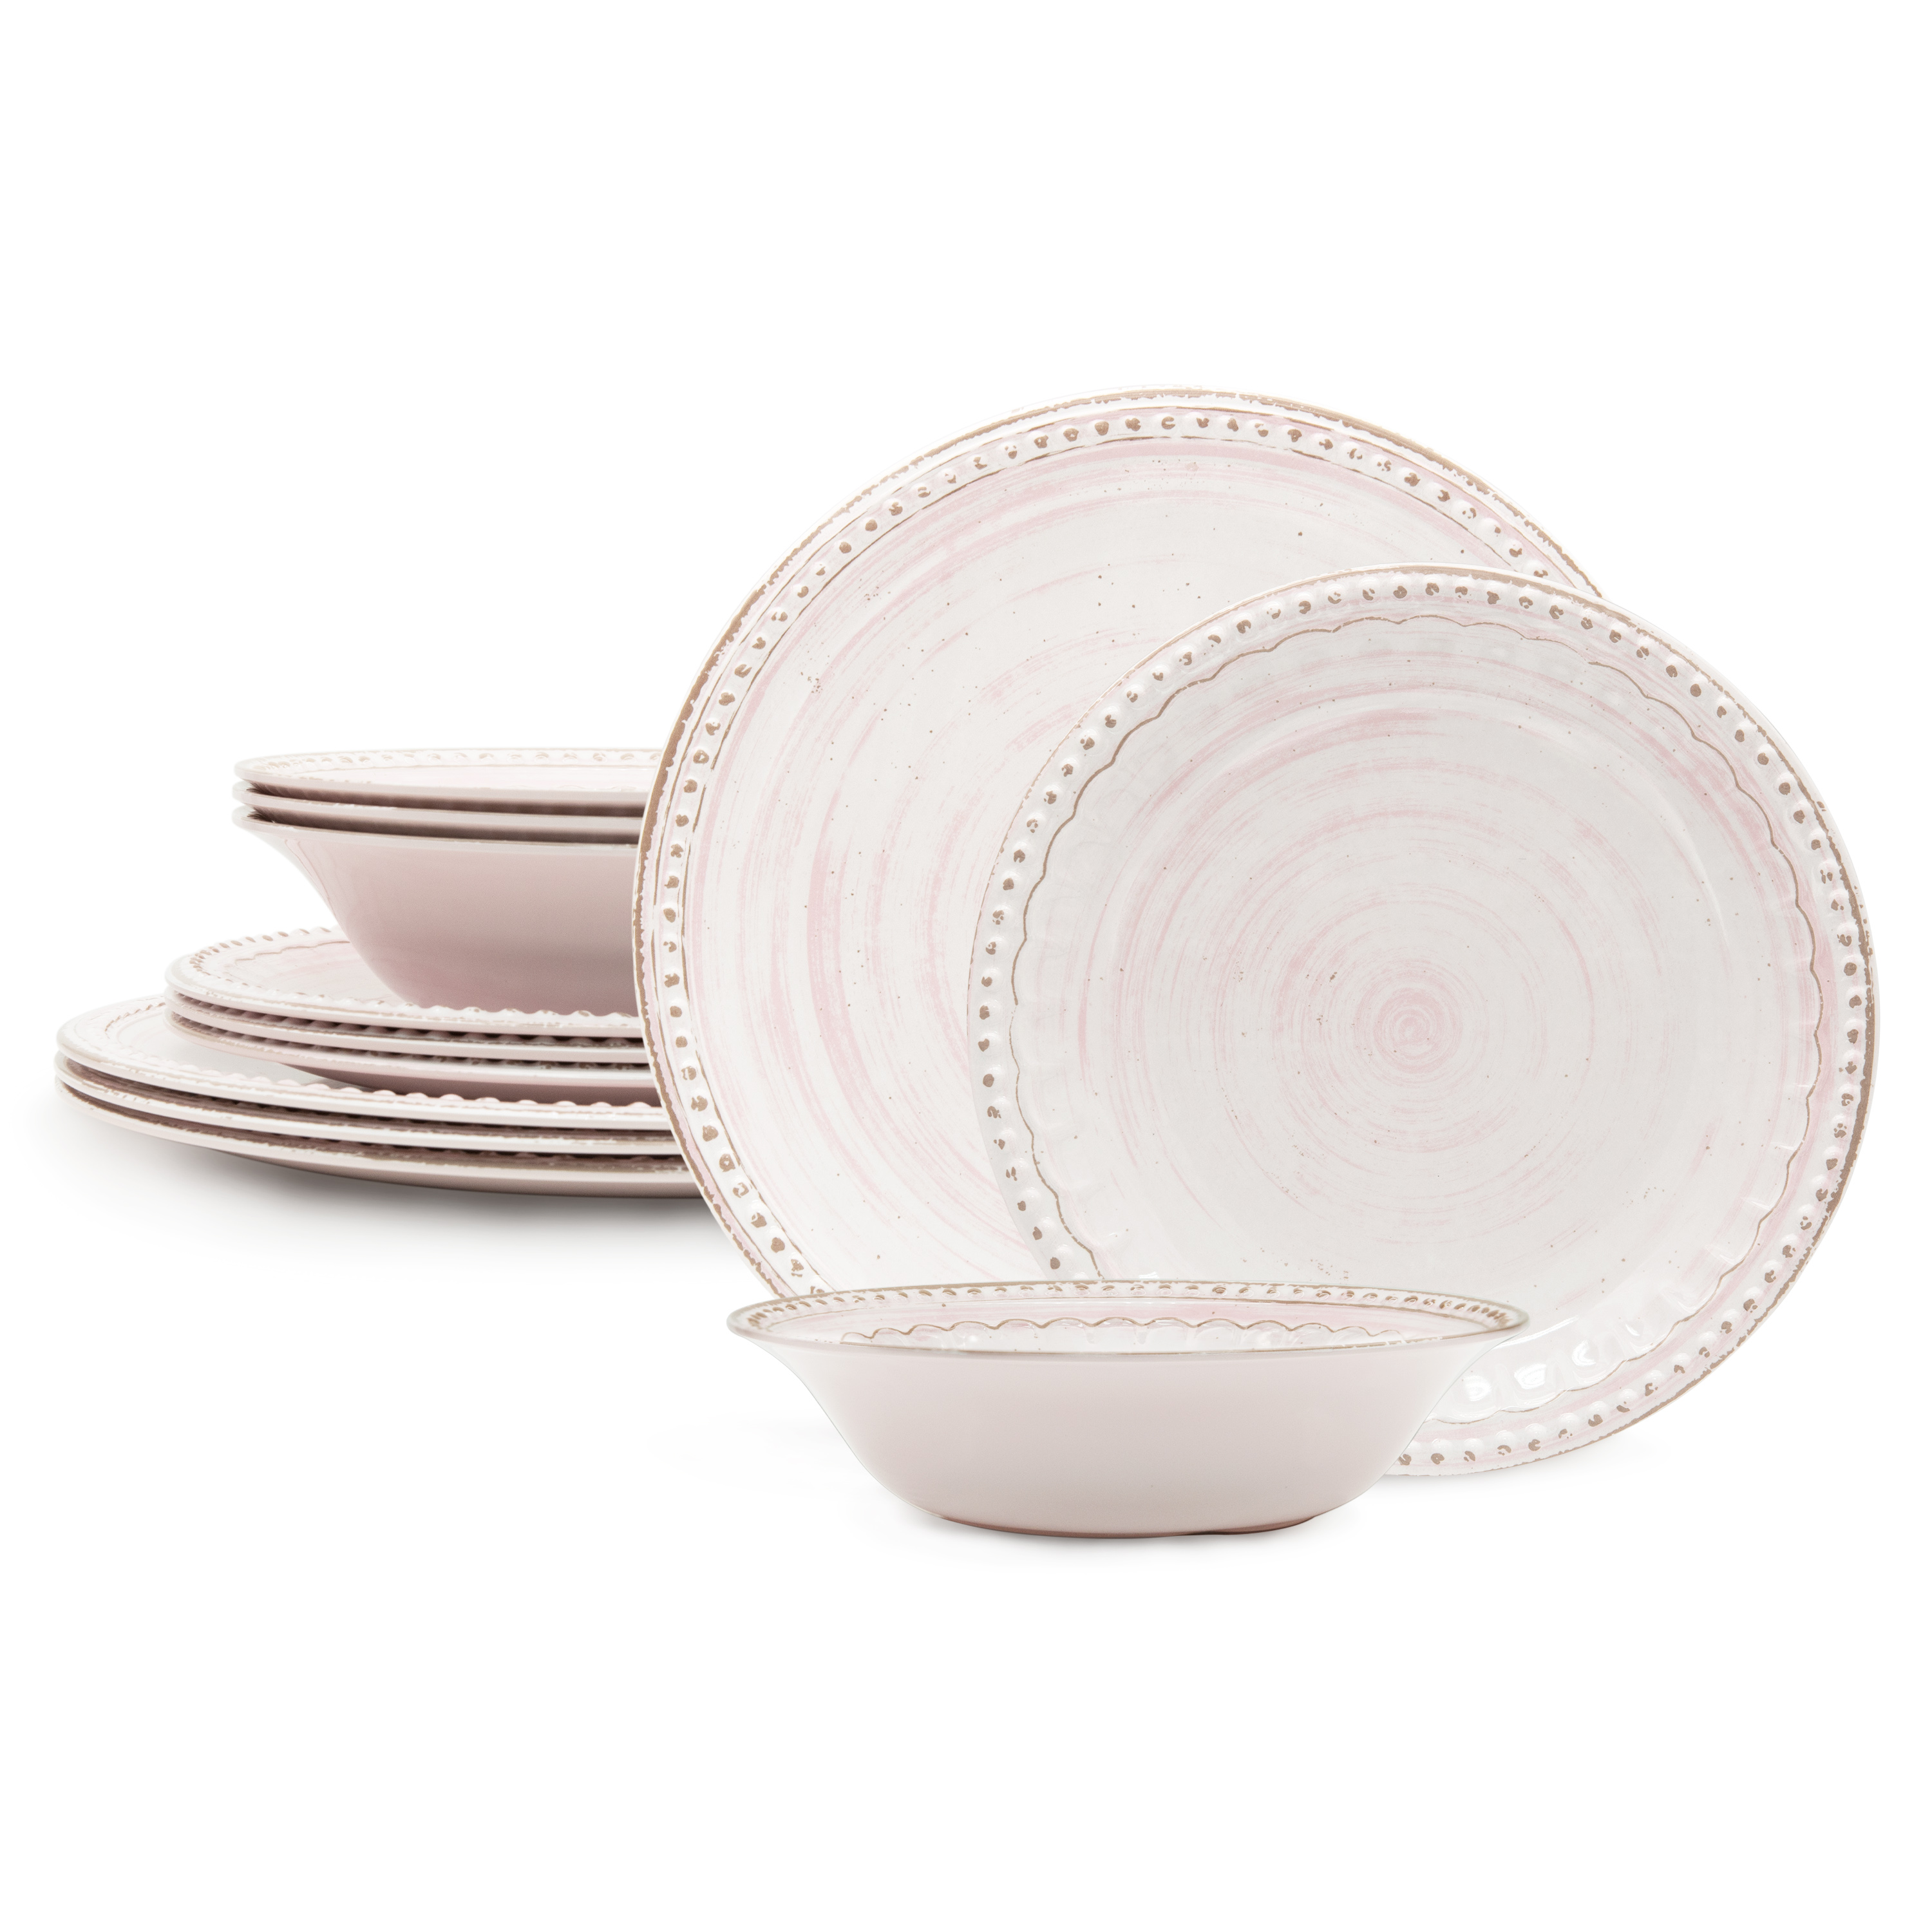 French Country Plate & Bowl Sets, Pink, 12-piece set slideshow image 1